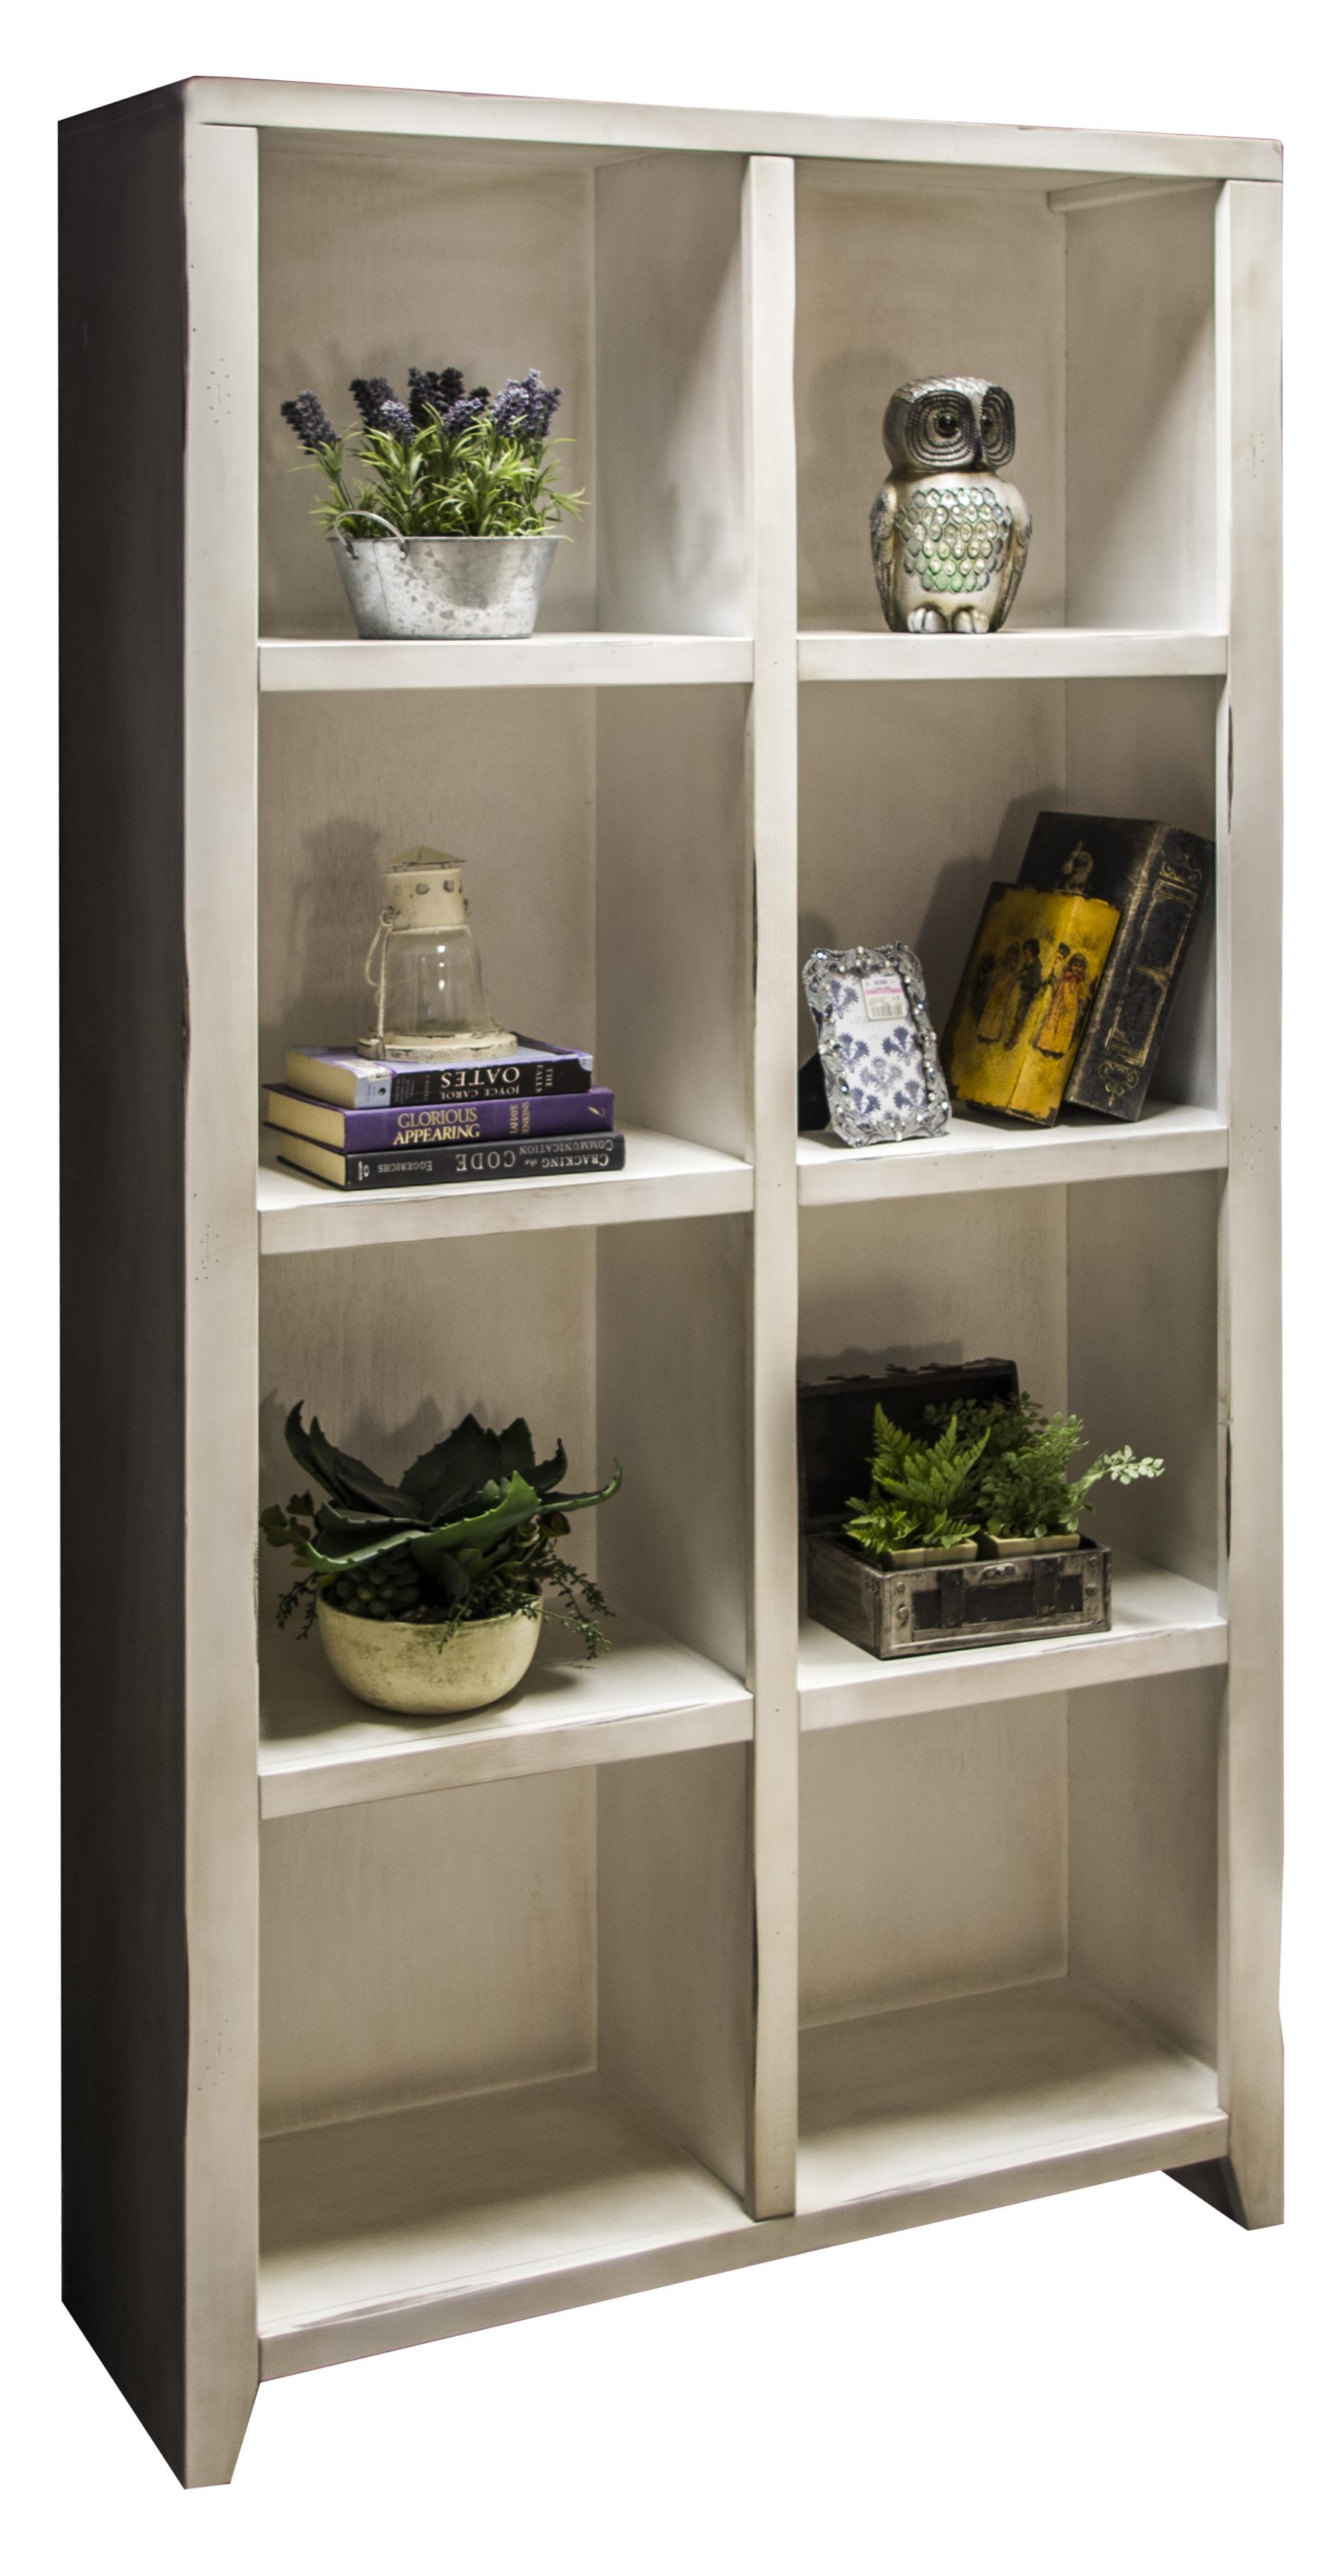 Legends Furniture Calistoga Collection Calistoga 8-Cubicle Bookcase - Item Number: CA6402-RWT